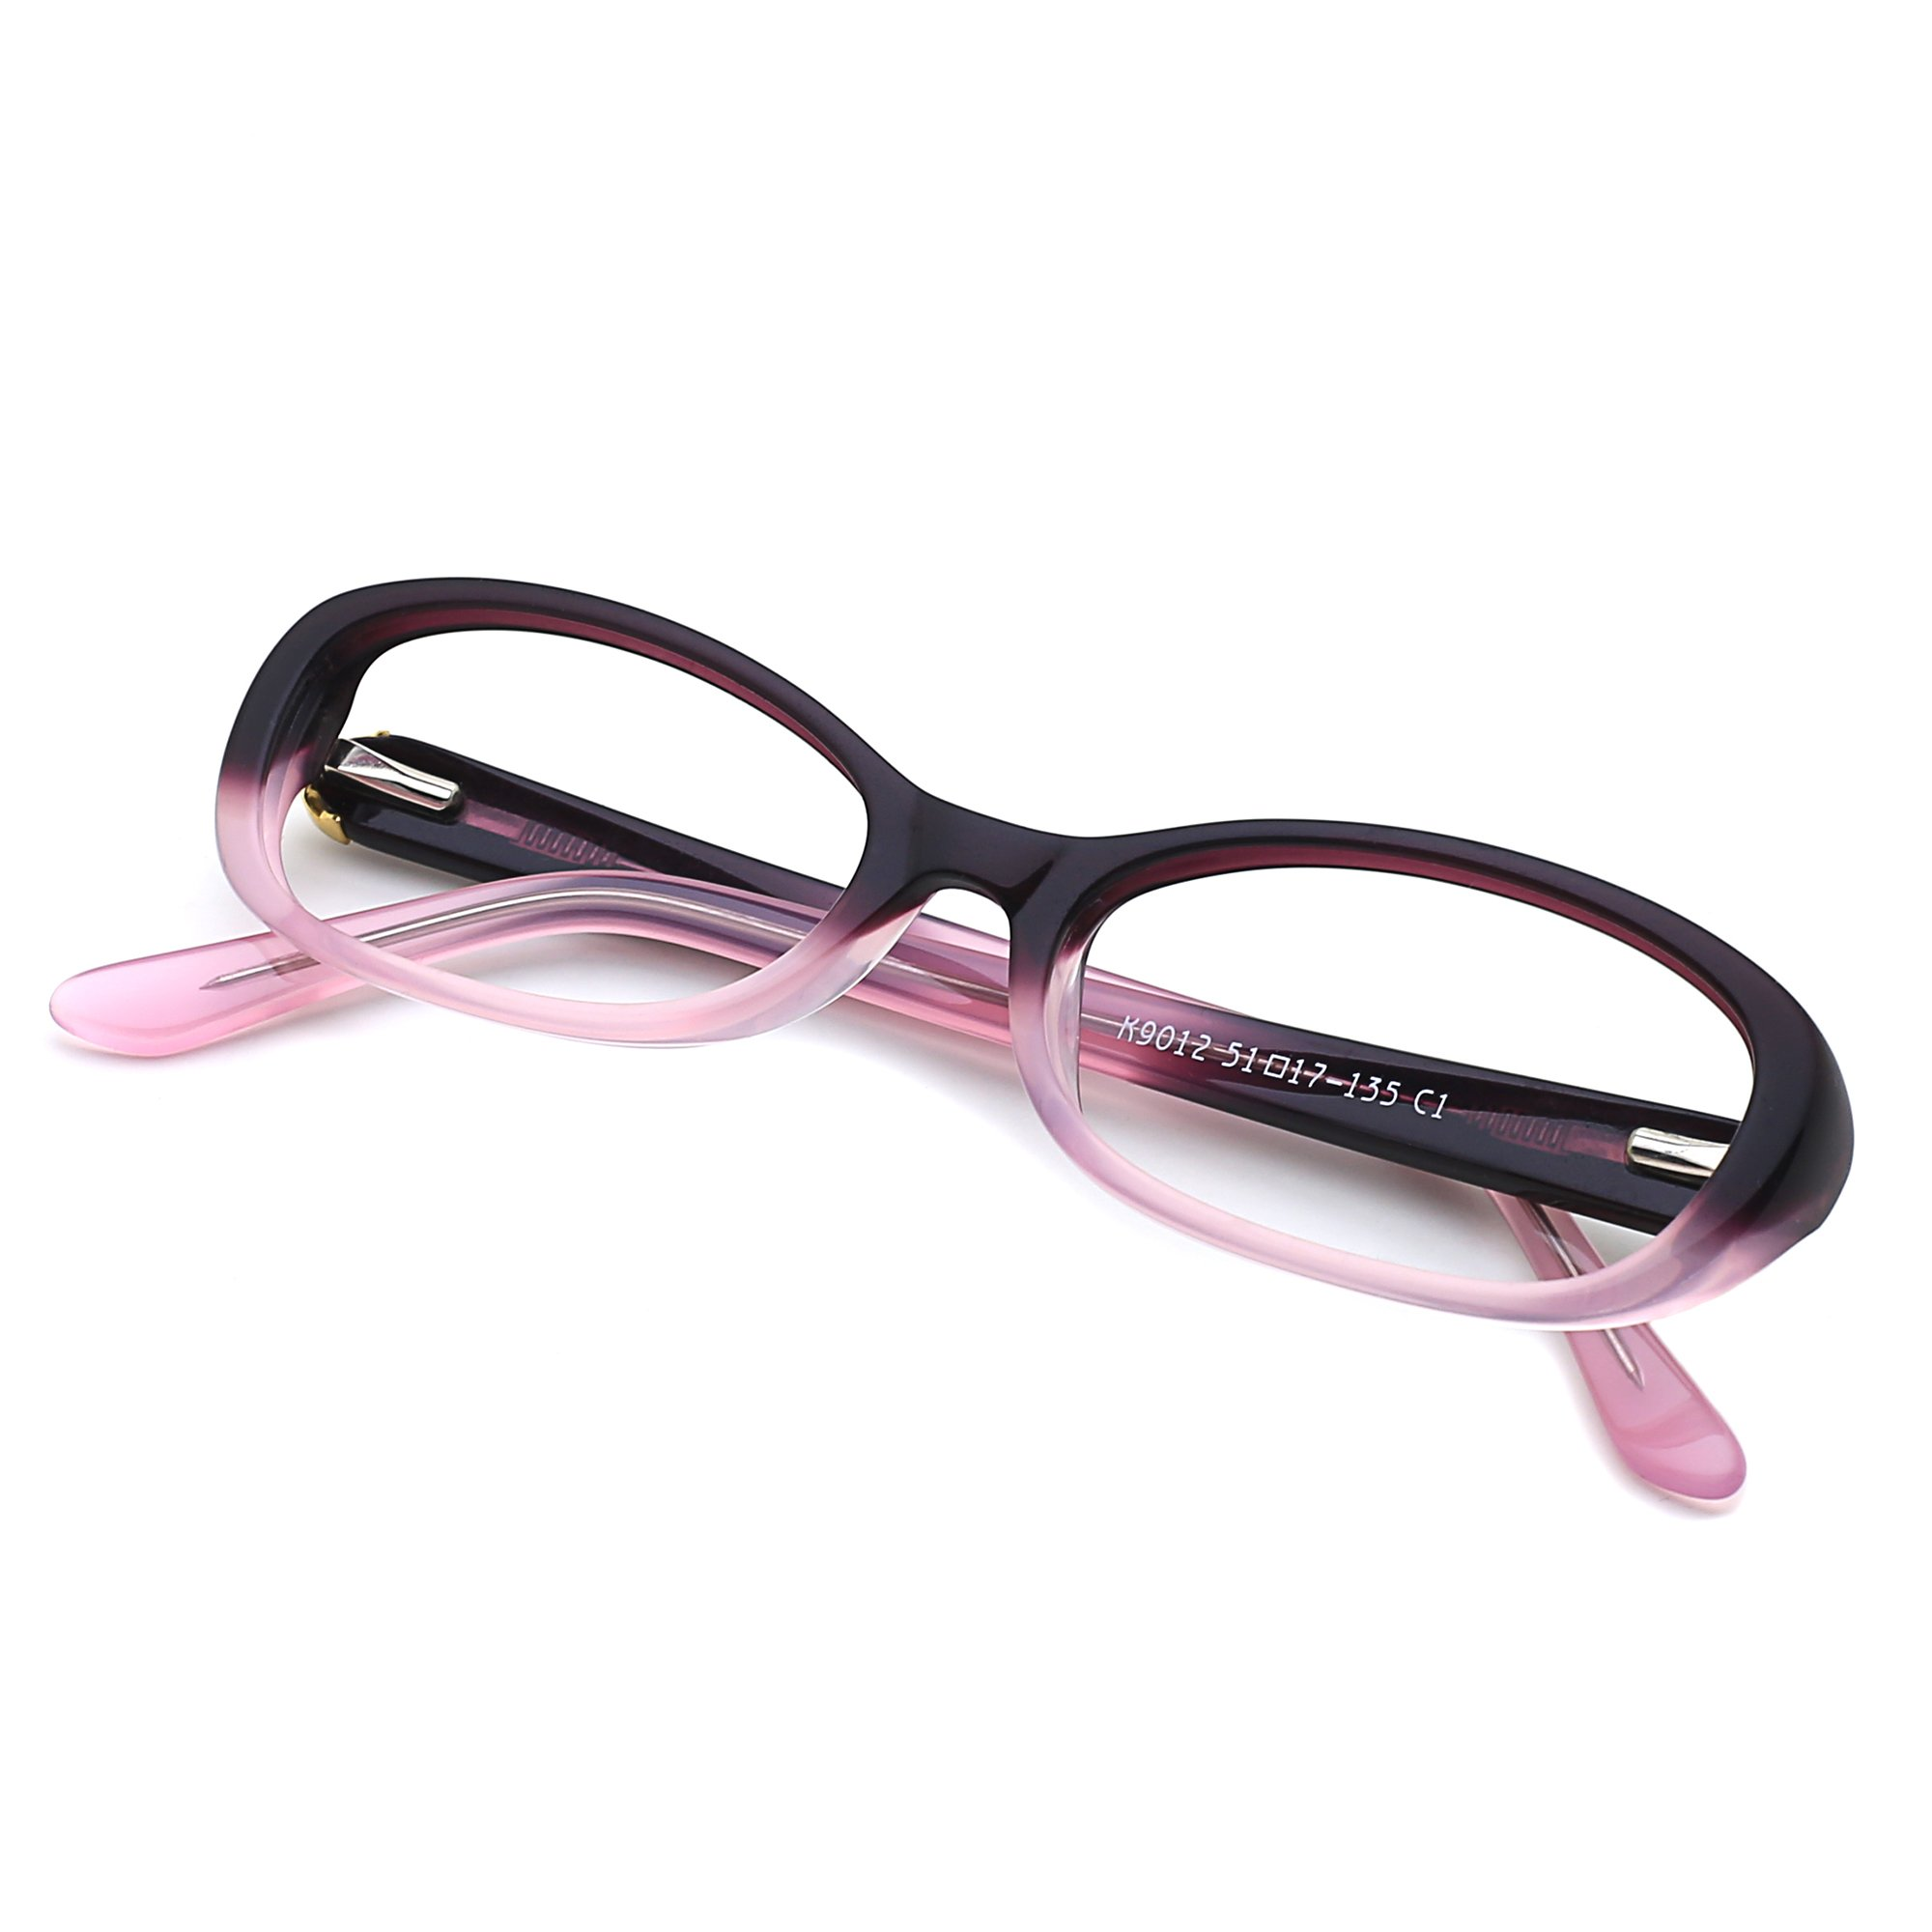 Slocyclub Small Rectangle Eyeglasses Retro Style Plate Frame Clear Lens Cool Stylish